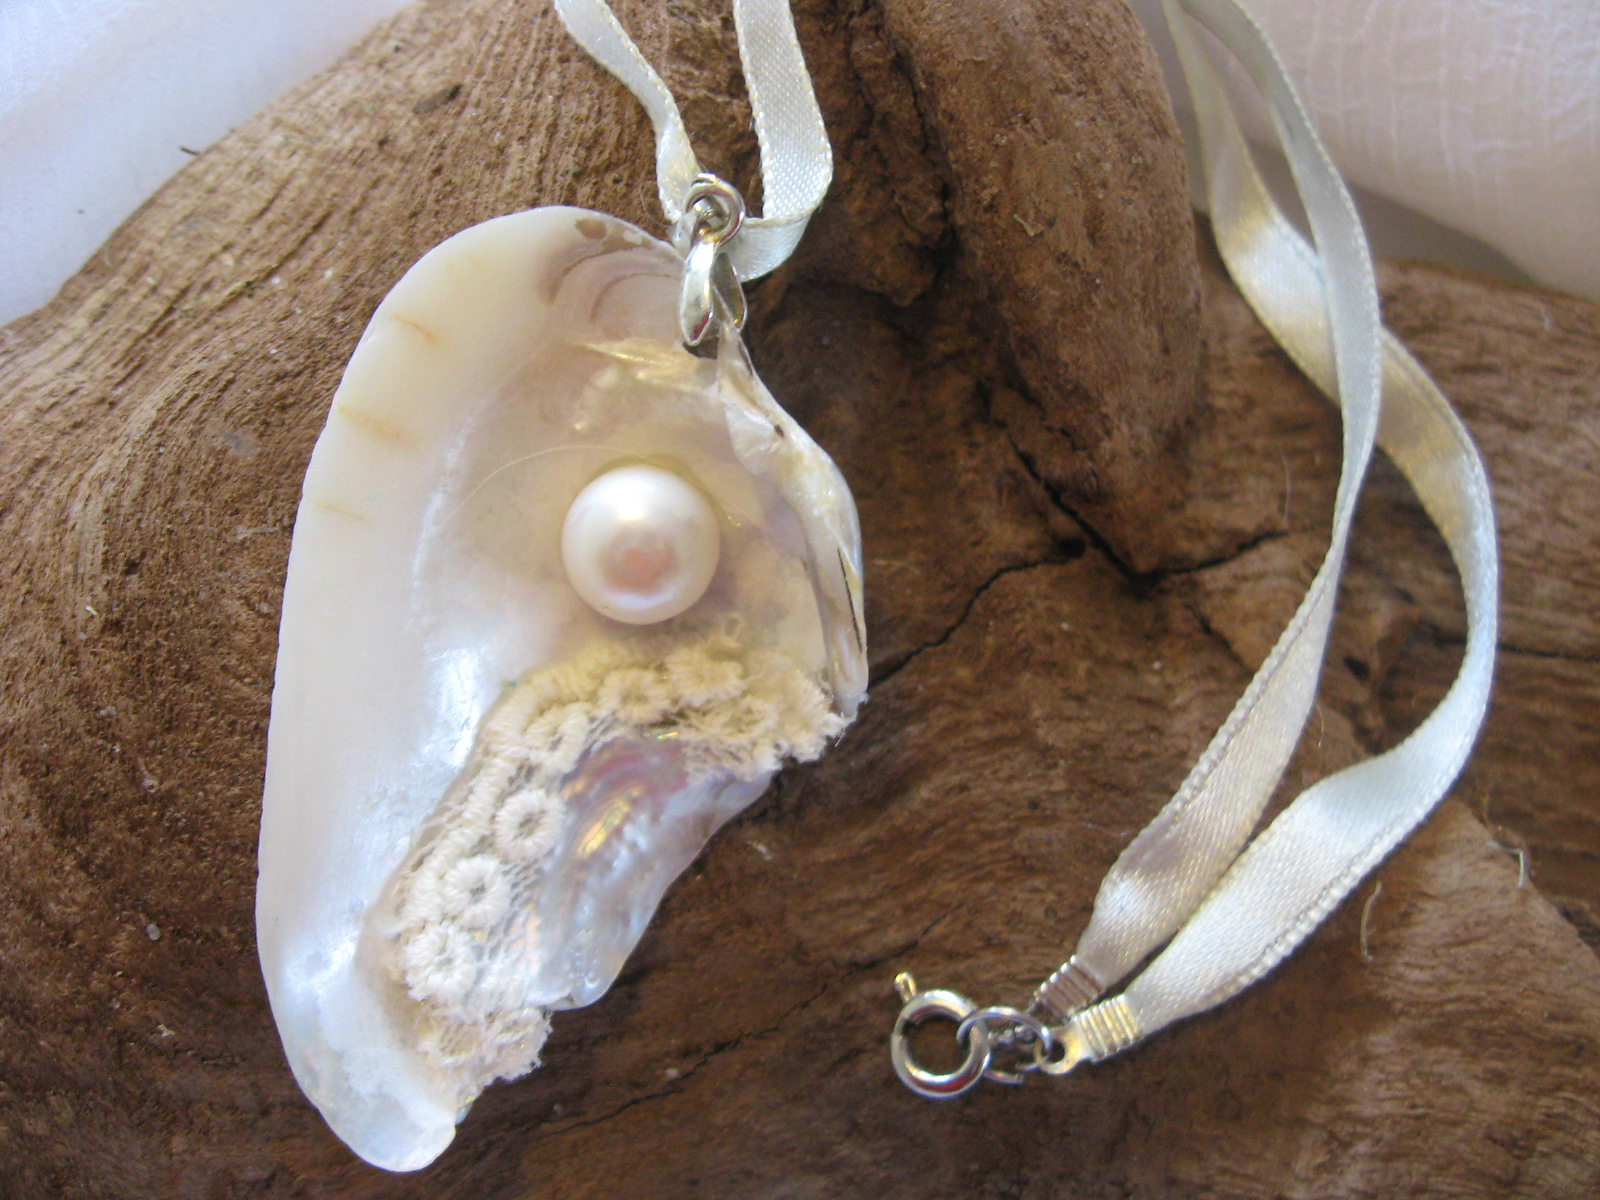 Giving Shells Back Their Pearls